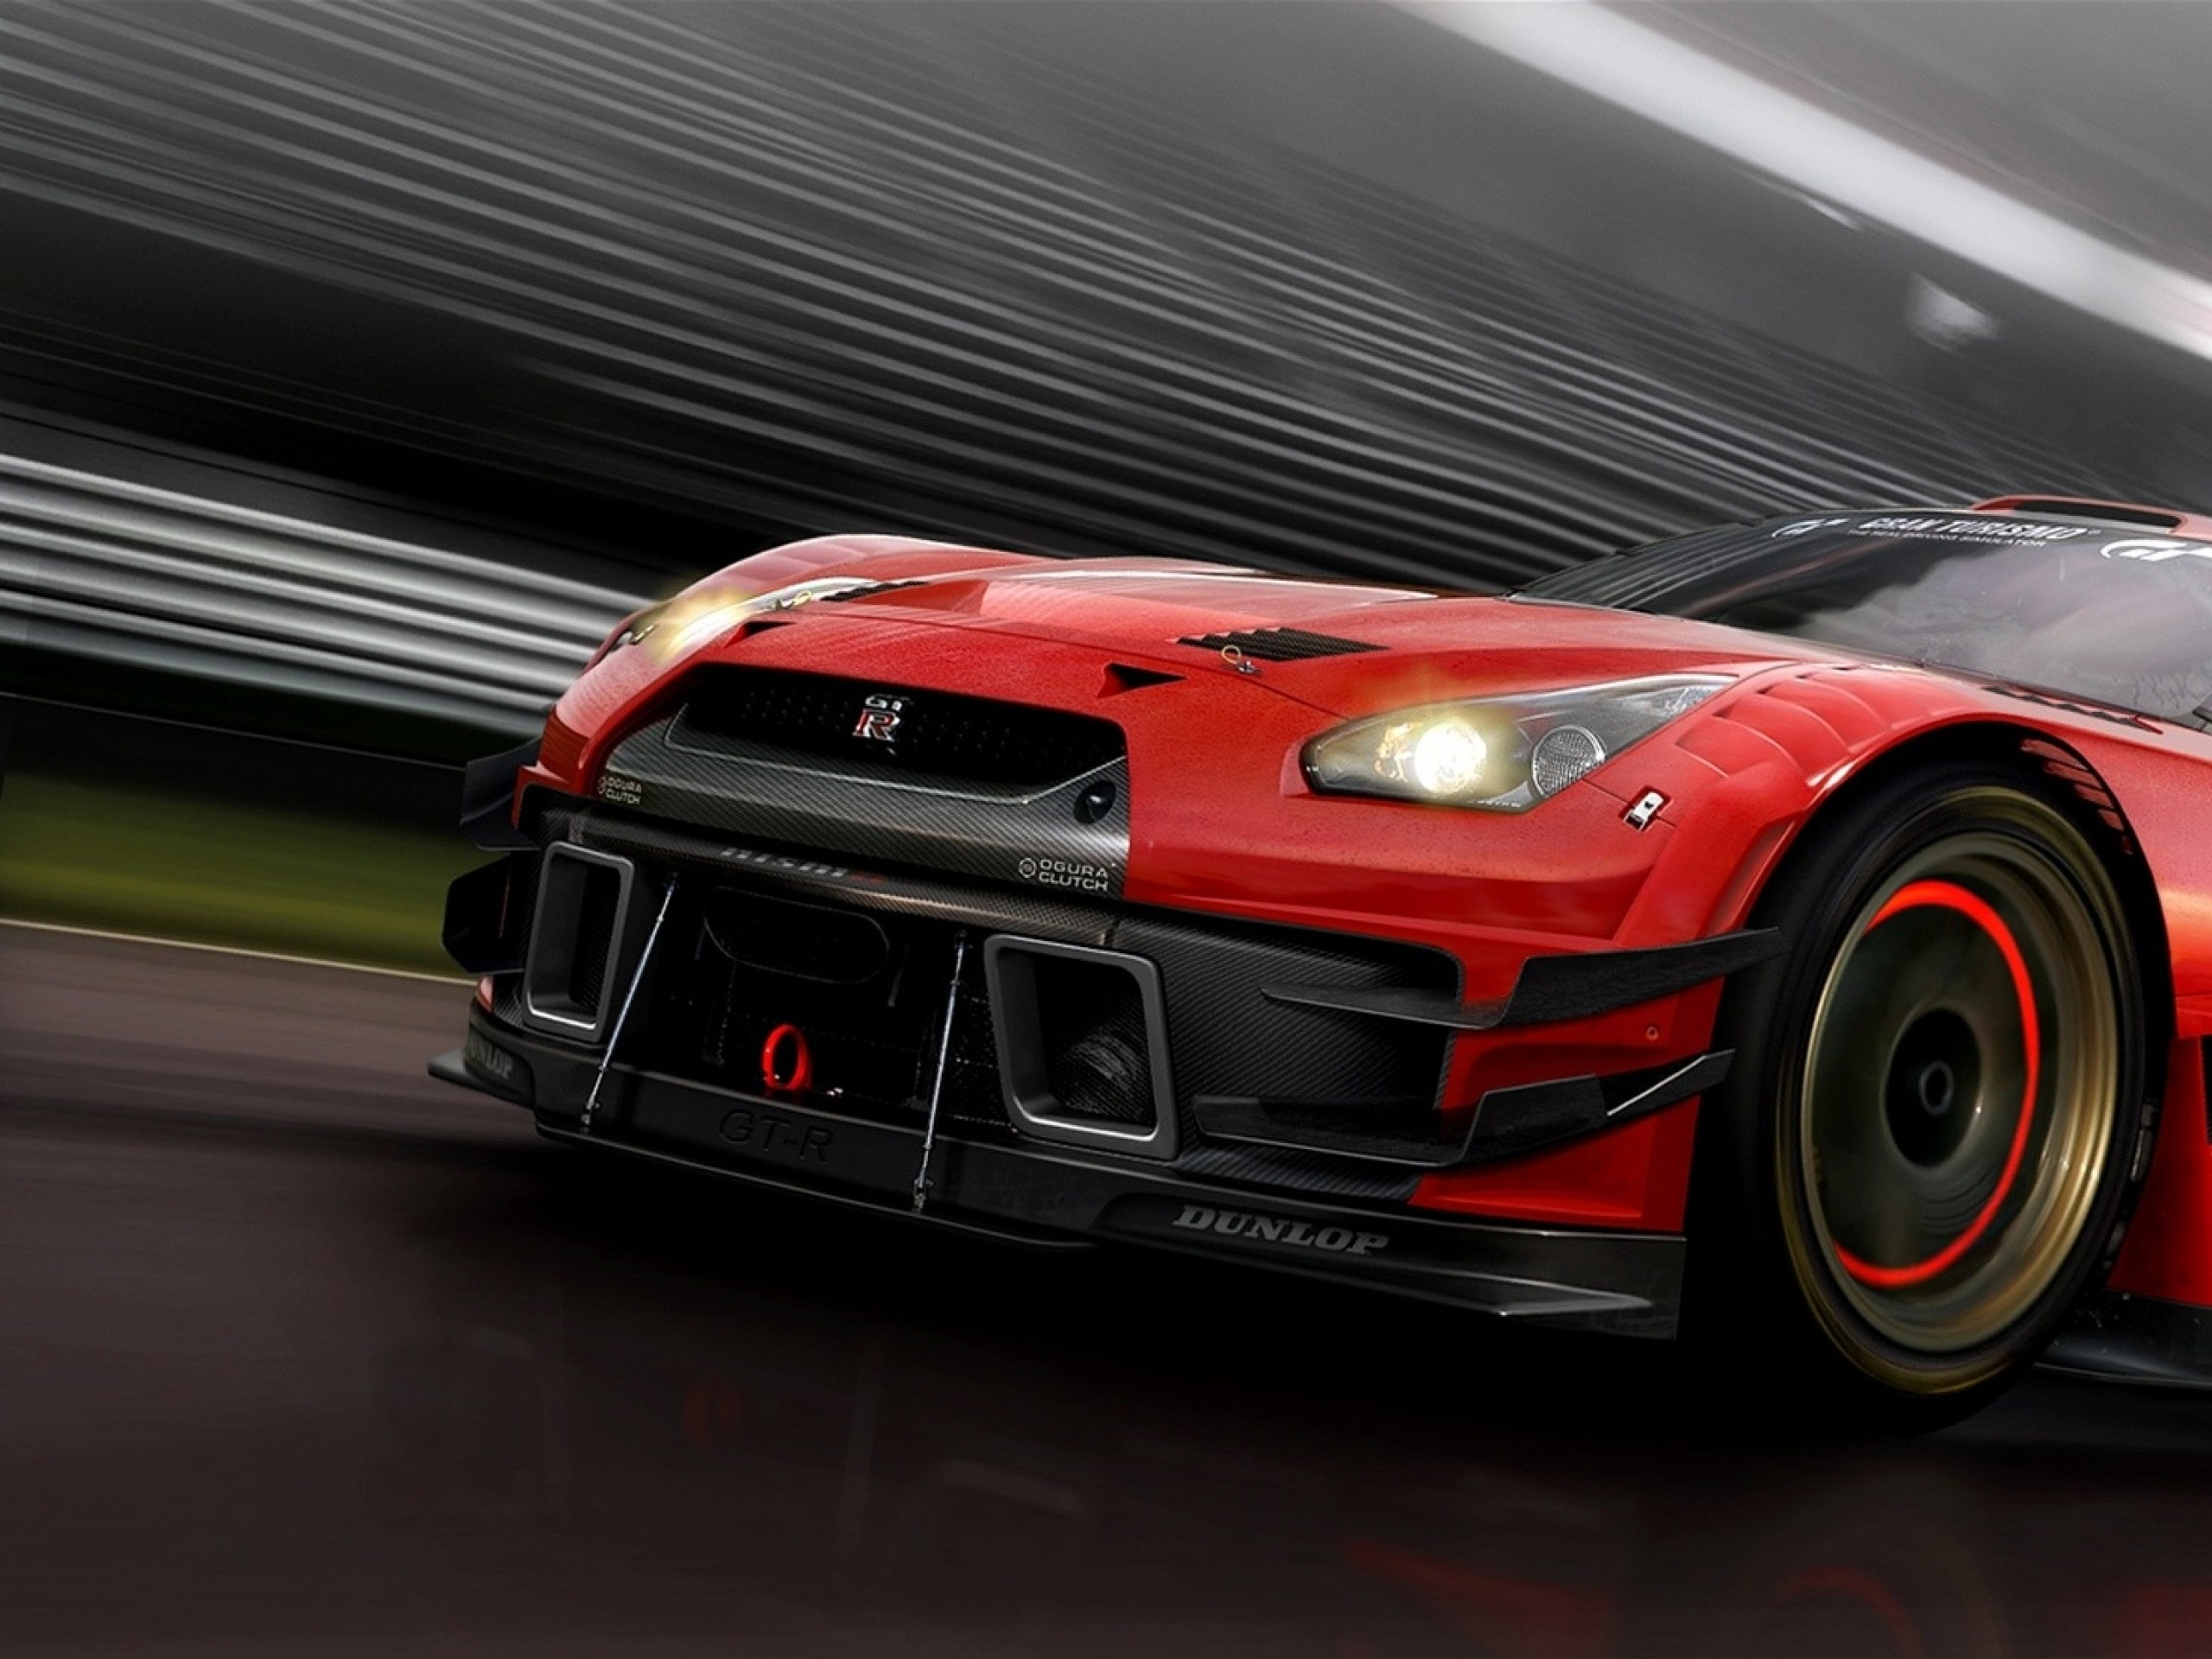 2560x1920 Nissan GTR sport car on nice wallpapers #nissangtr #hdwallpapers  www.yours-cars